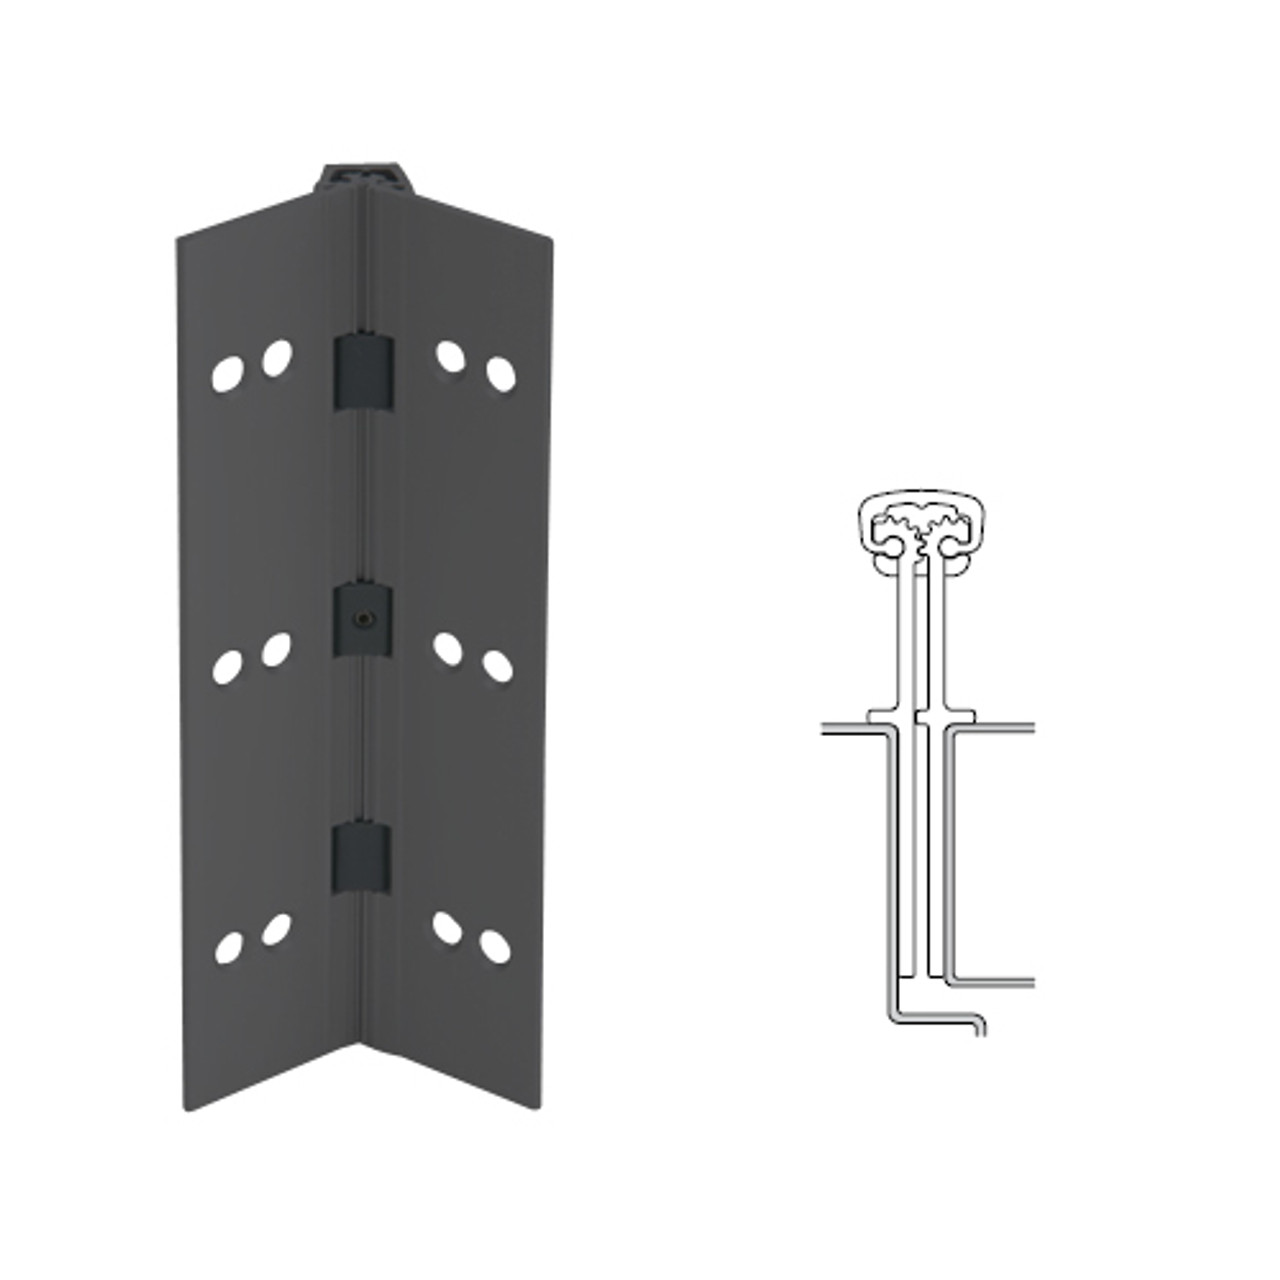 040XY-315AN-83-SECWDWD IVES Full Mortise Continuous Geared Hinges with Security Screws - Hex Pin Drive in Anodized Black